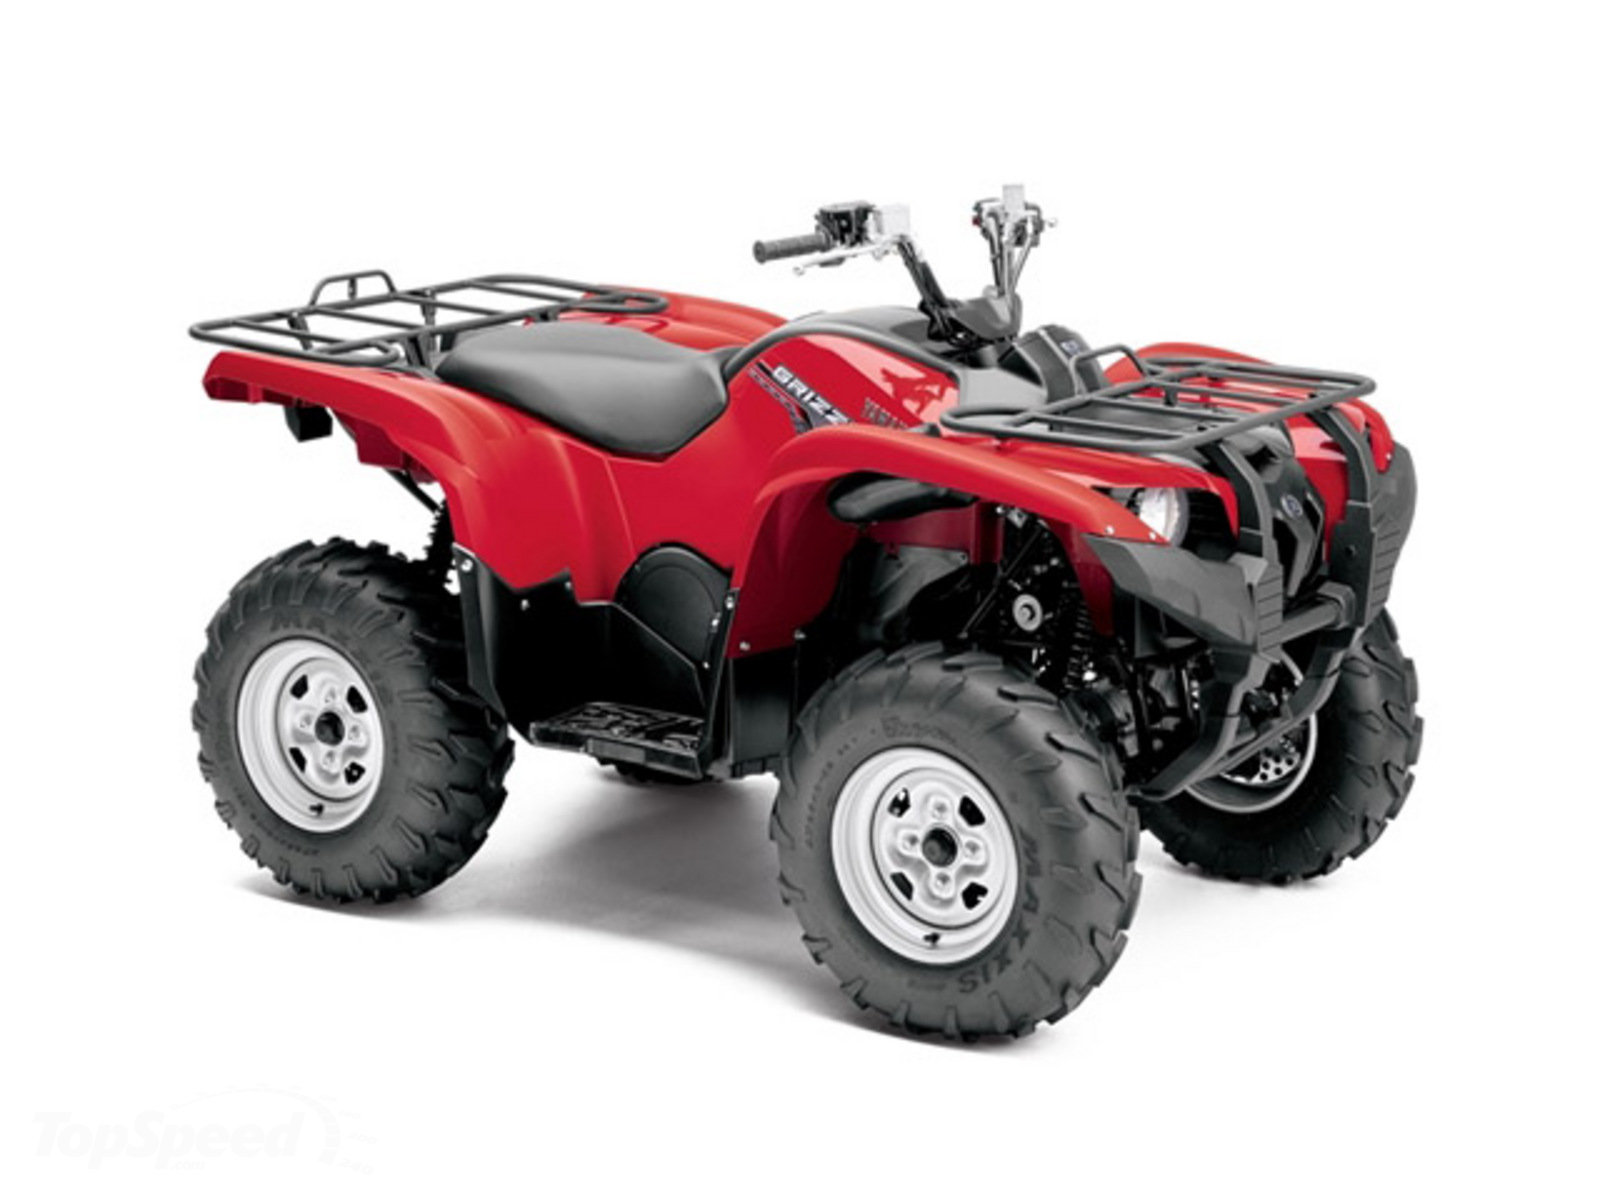 Yamaha Grizzly News And Reviews | Top Speed